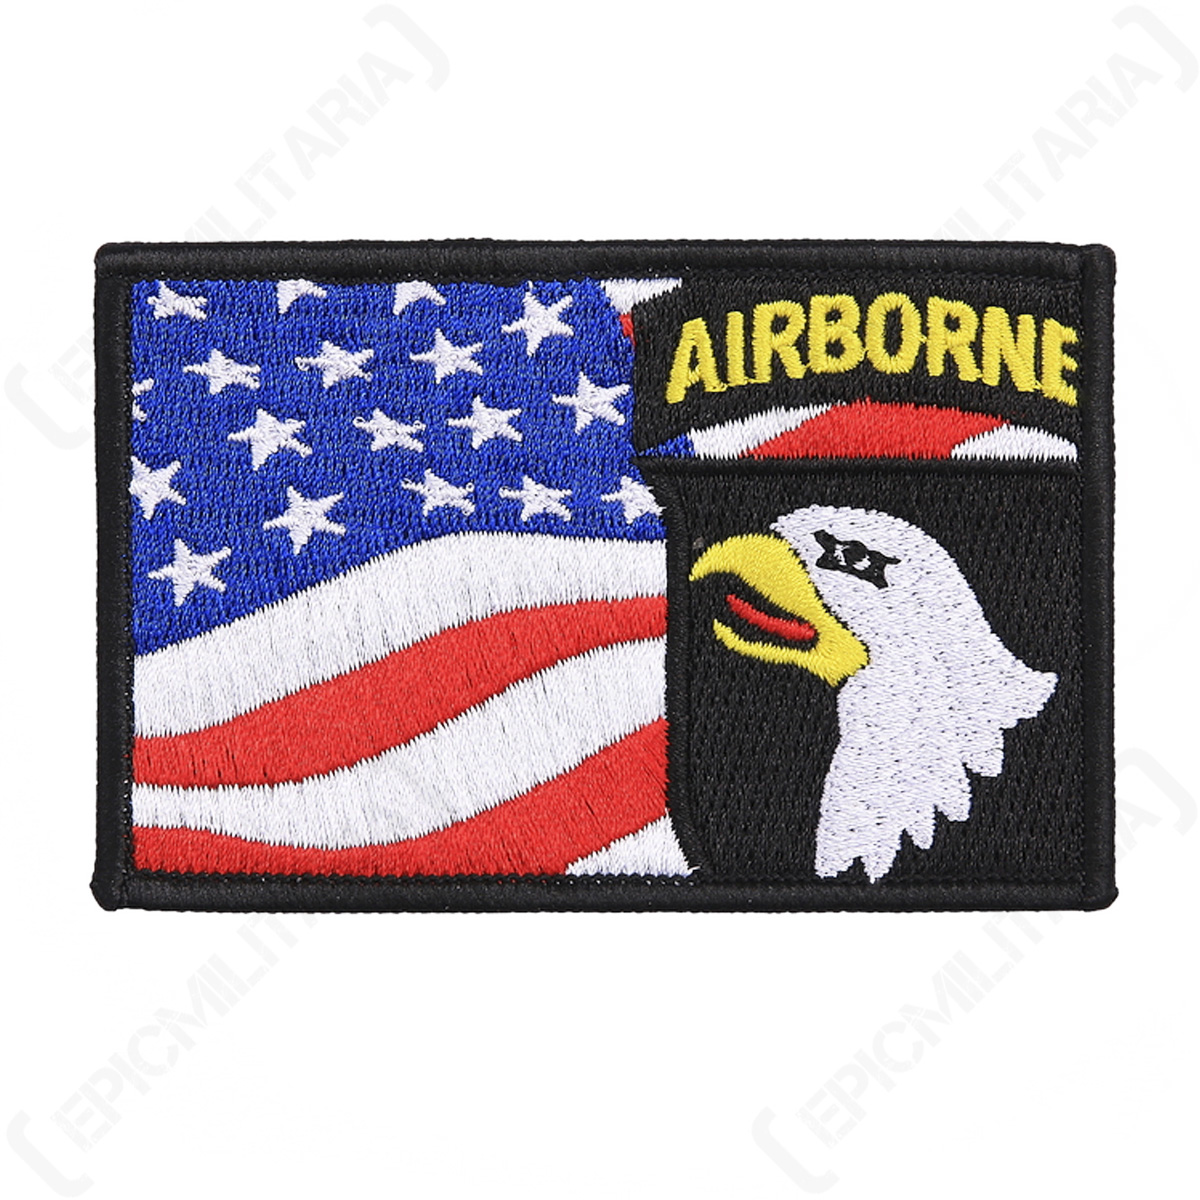 WW2 Themed Flag Patches